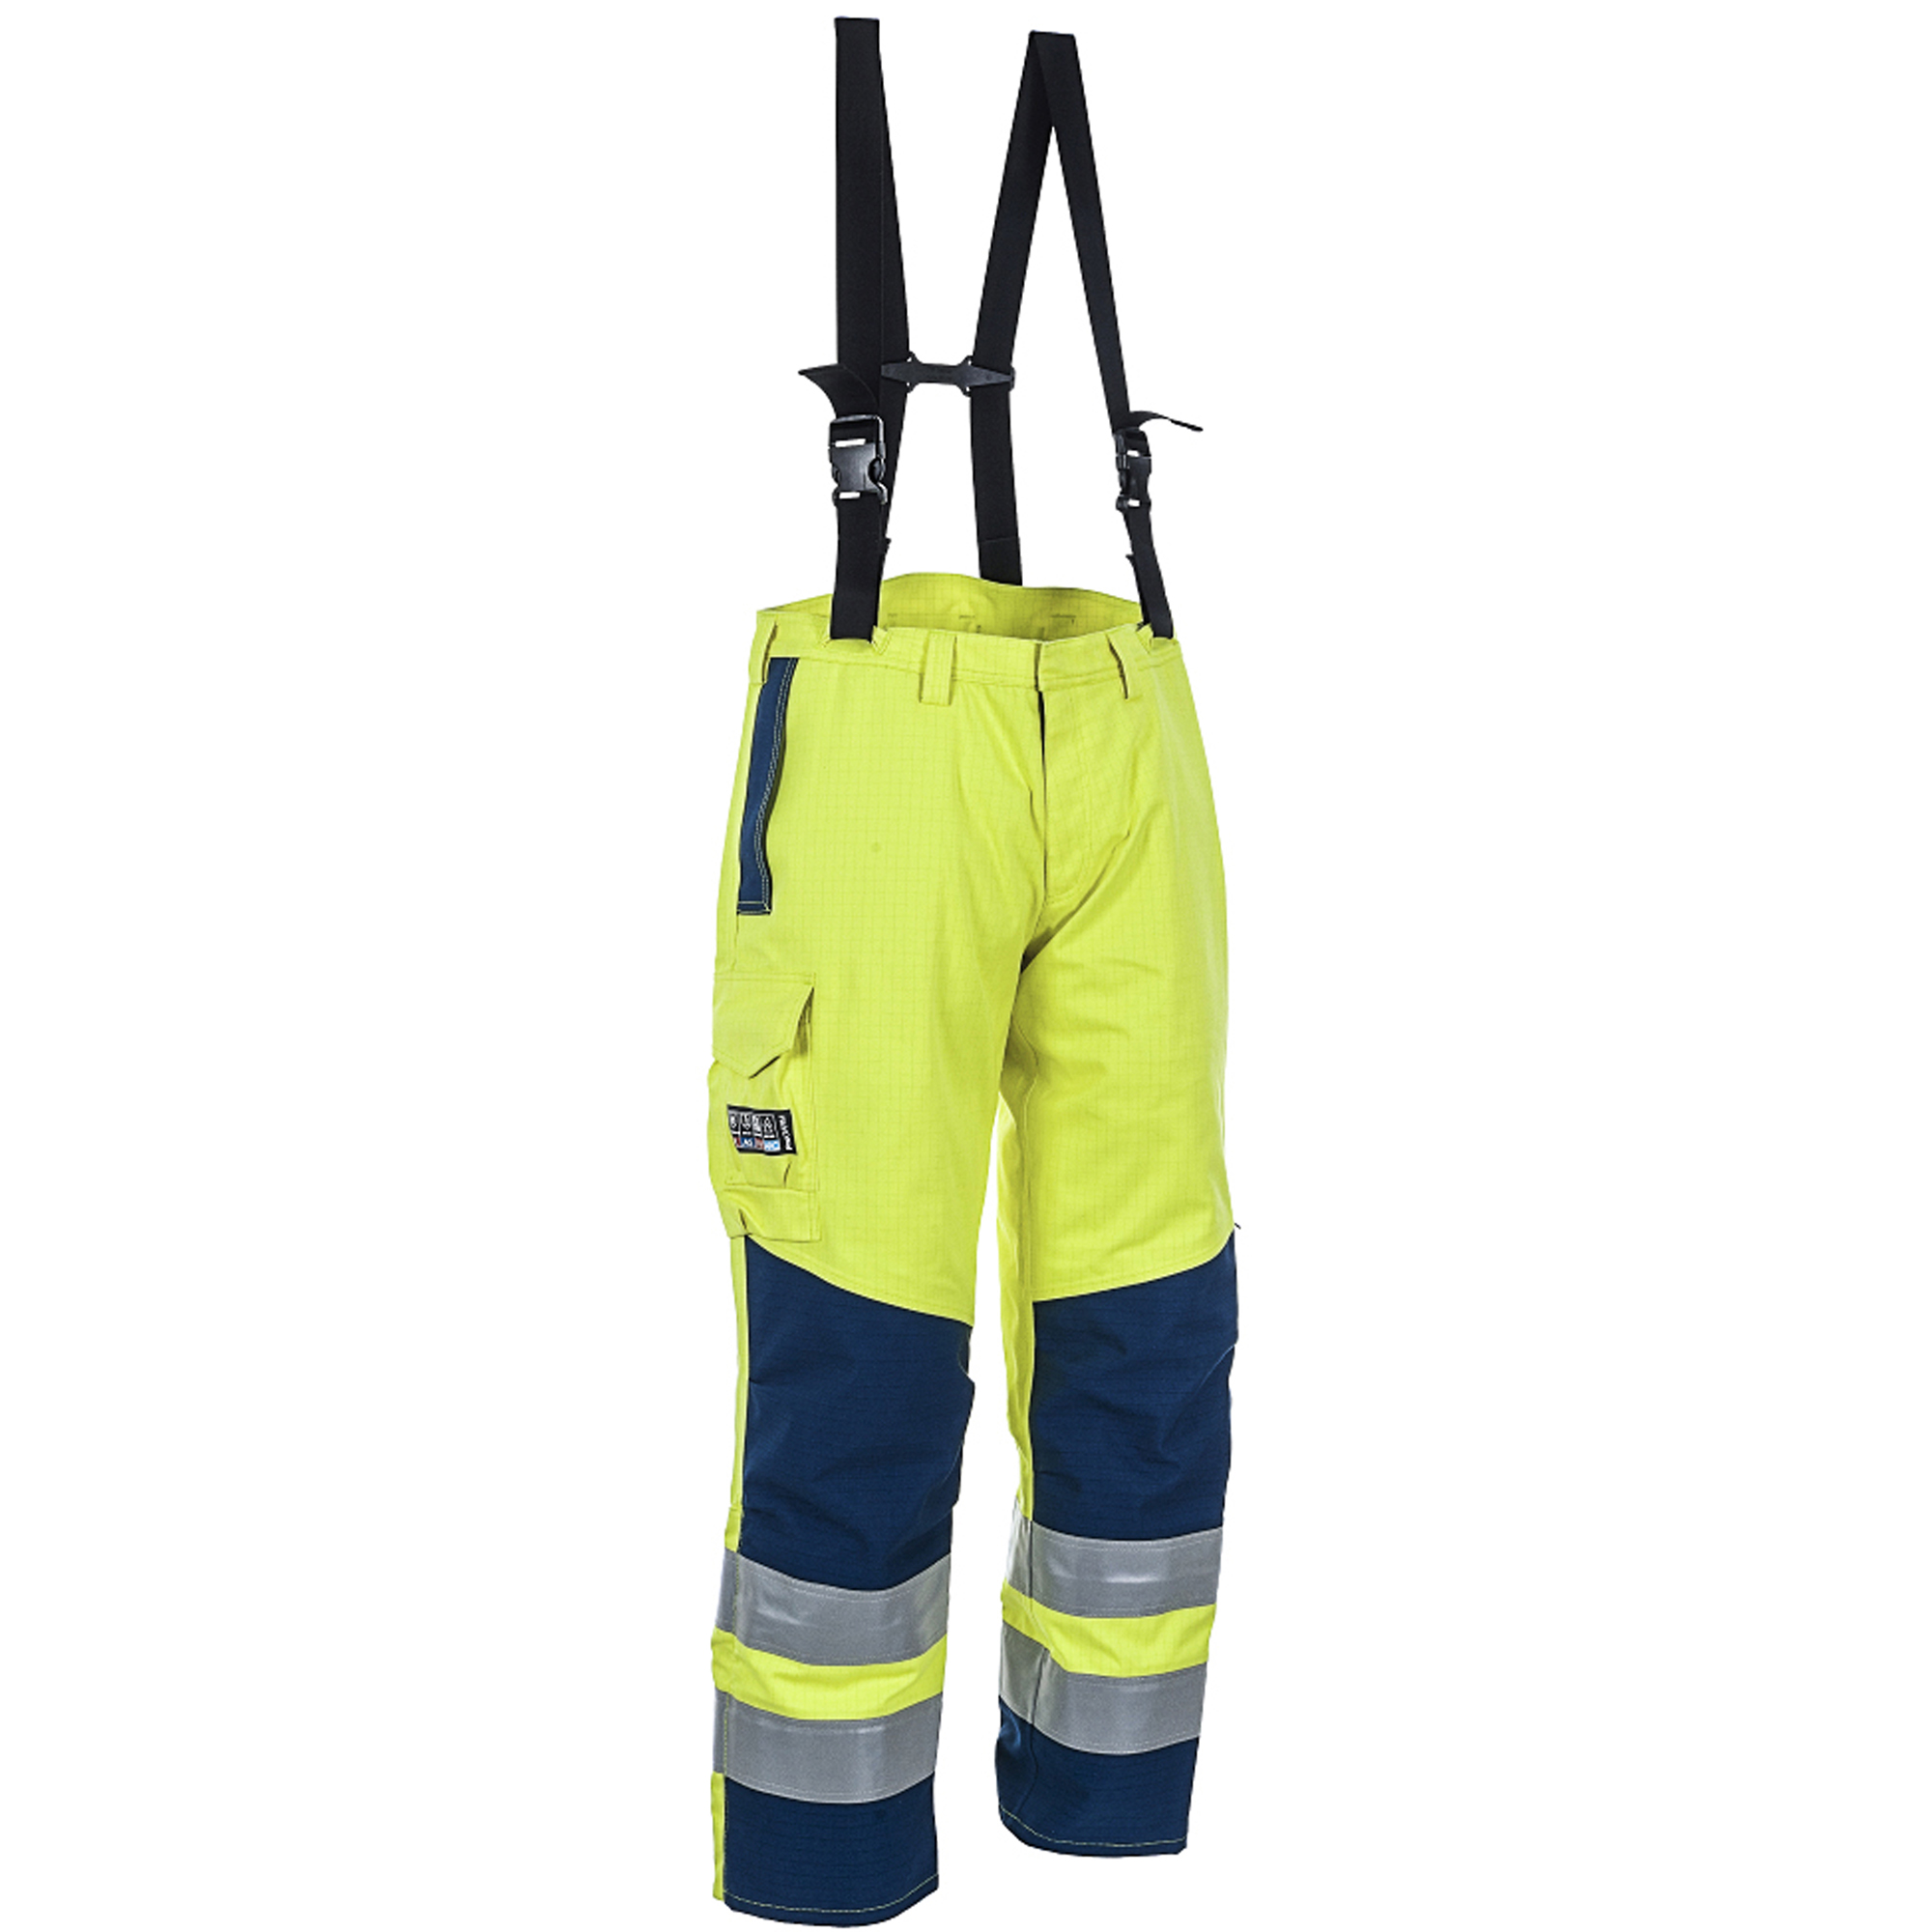 PROGARM 9880 WATERPROOF TROUSER - 47.0 CAL/CM2